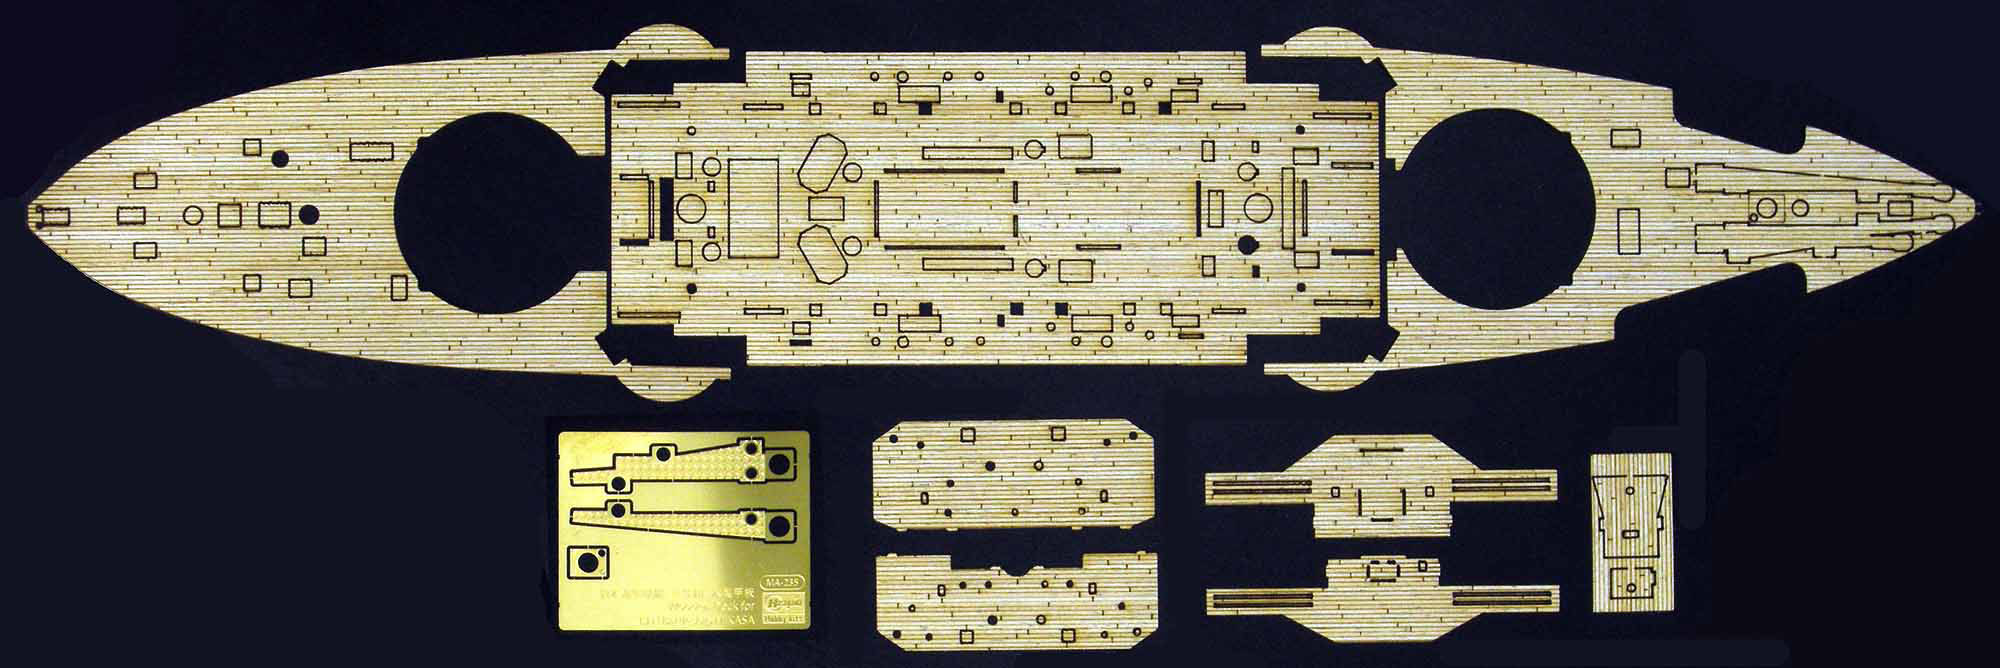 "Hasegawa Wooden Deck For Z21(40021-4) 1/350 Ijn Battleship Mikasa ""The Battle Of The Japan Sea"""